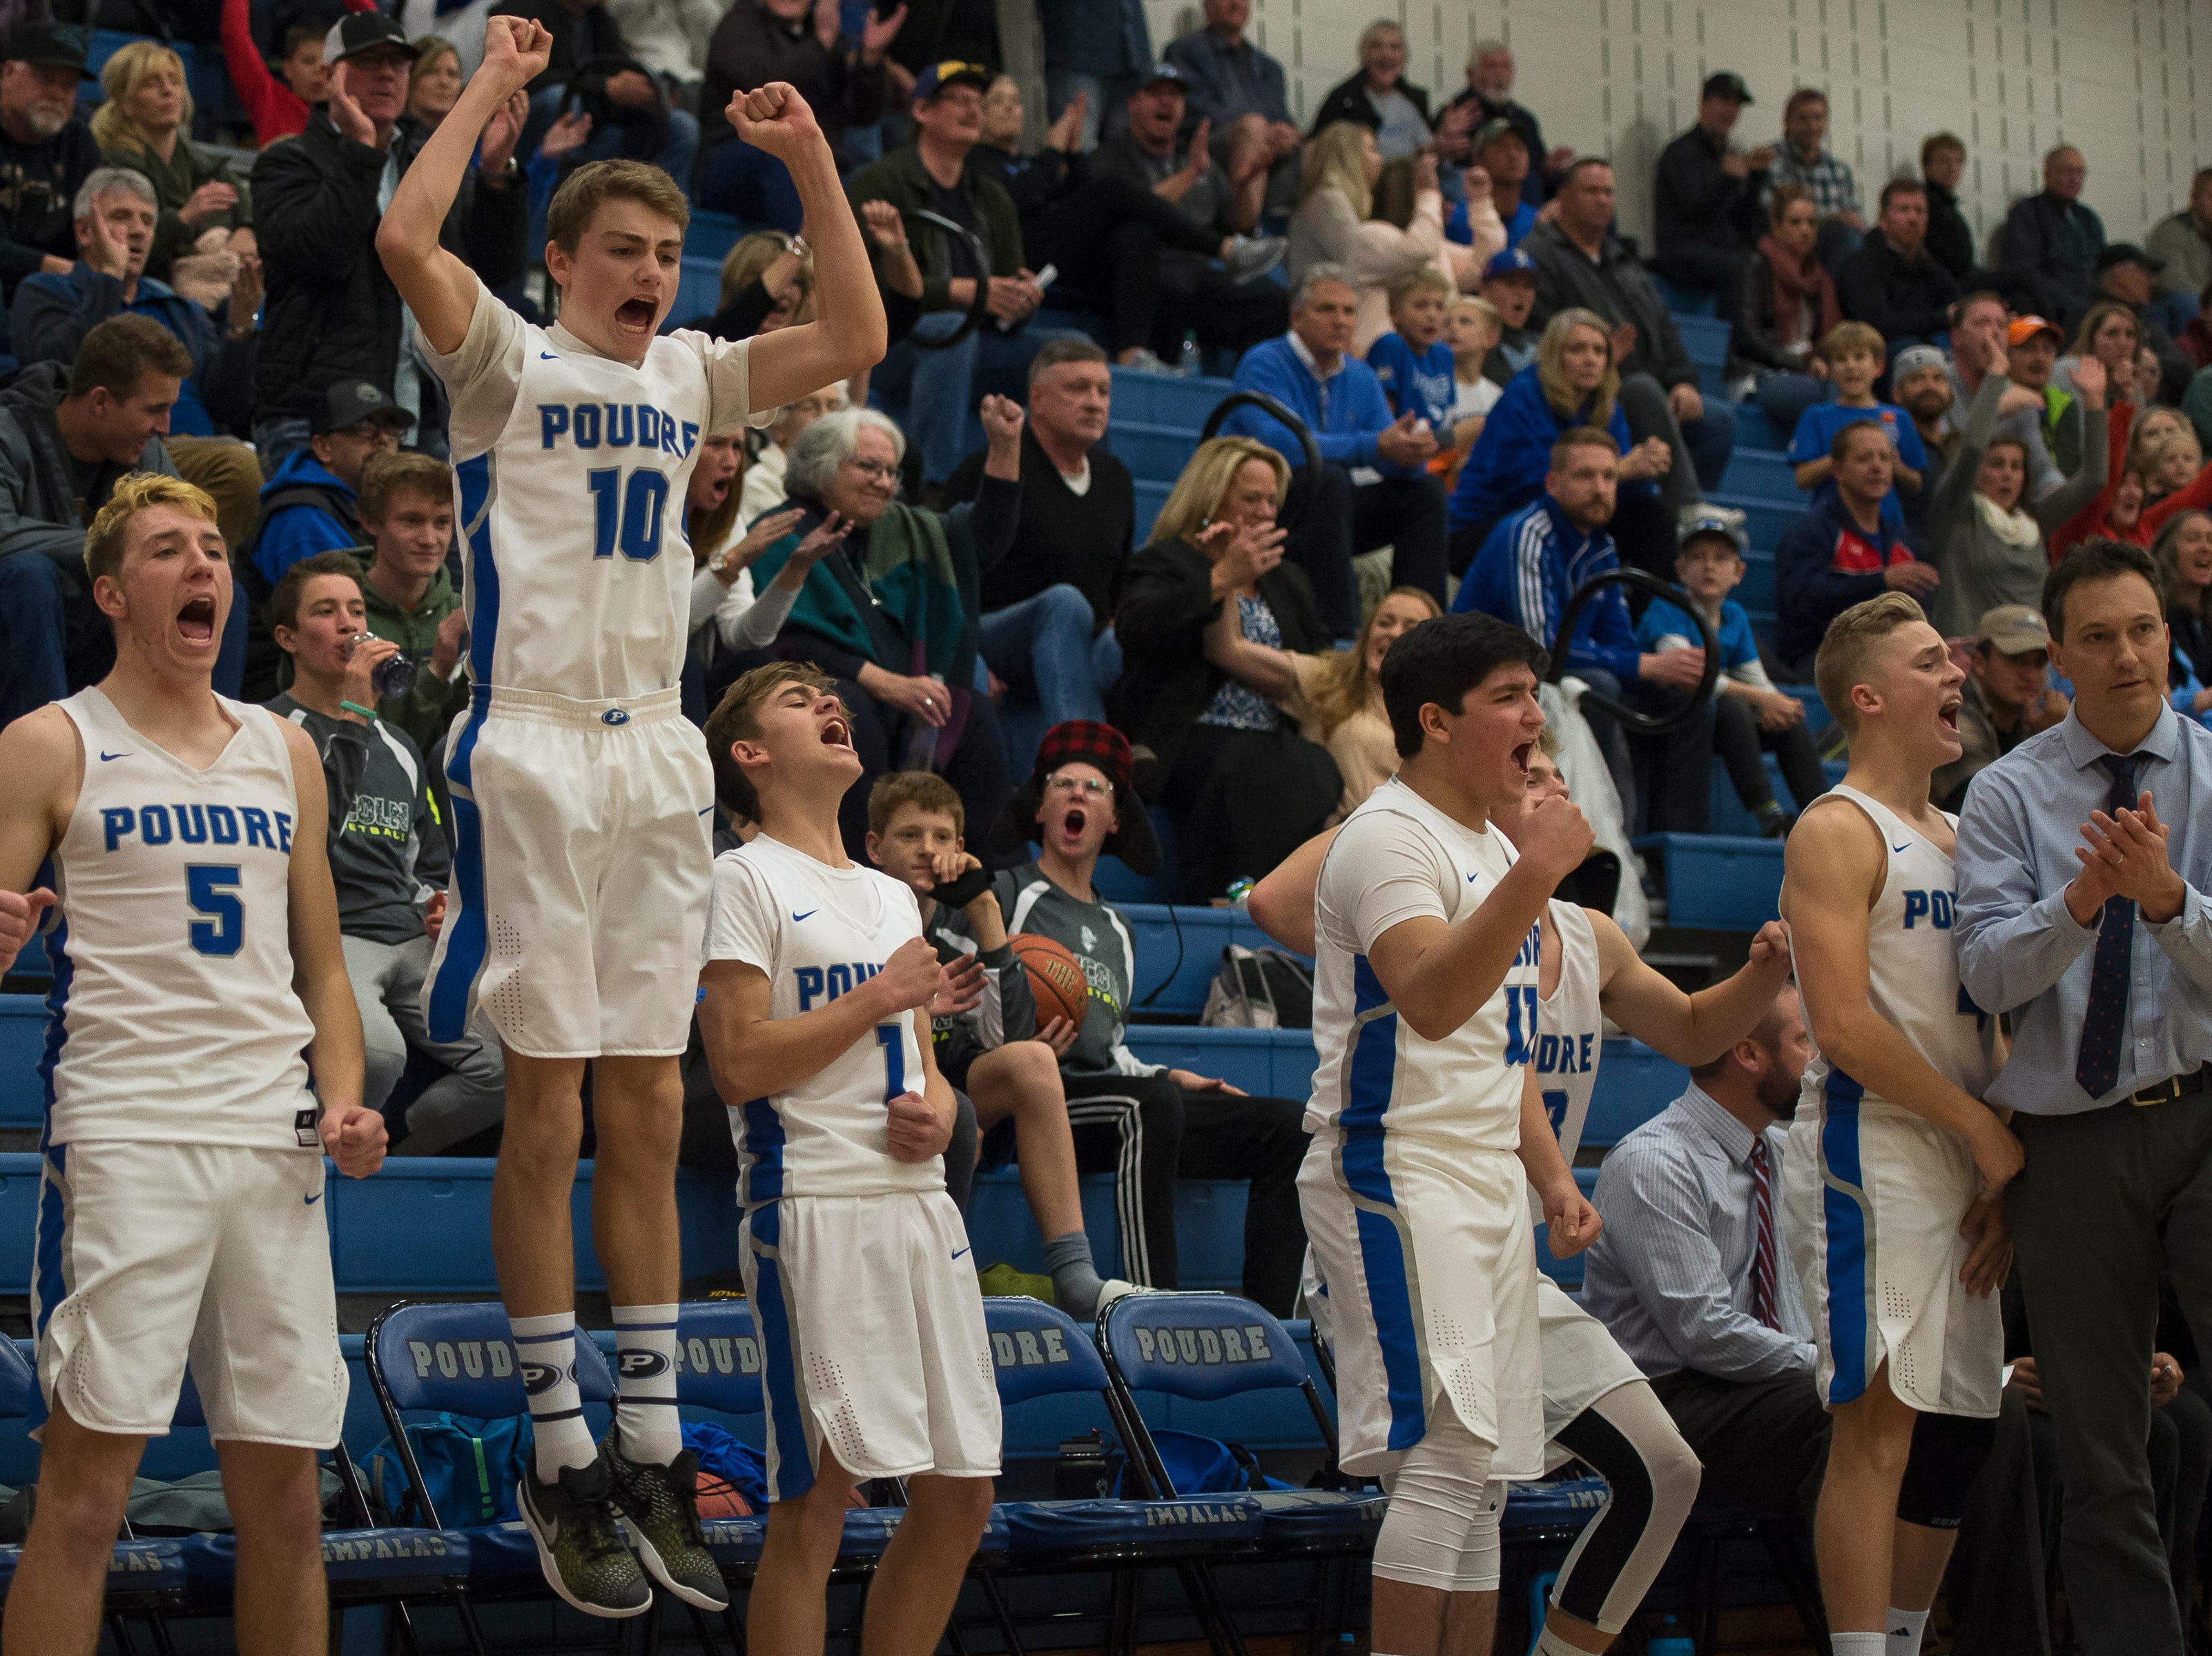 Poudre High School players react from the bench in the waning minutes of a win over Fossil Ridge High School on Tuesday, Dec. 4, 2018, at Poudre High School on Fort Collins, Colo.